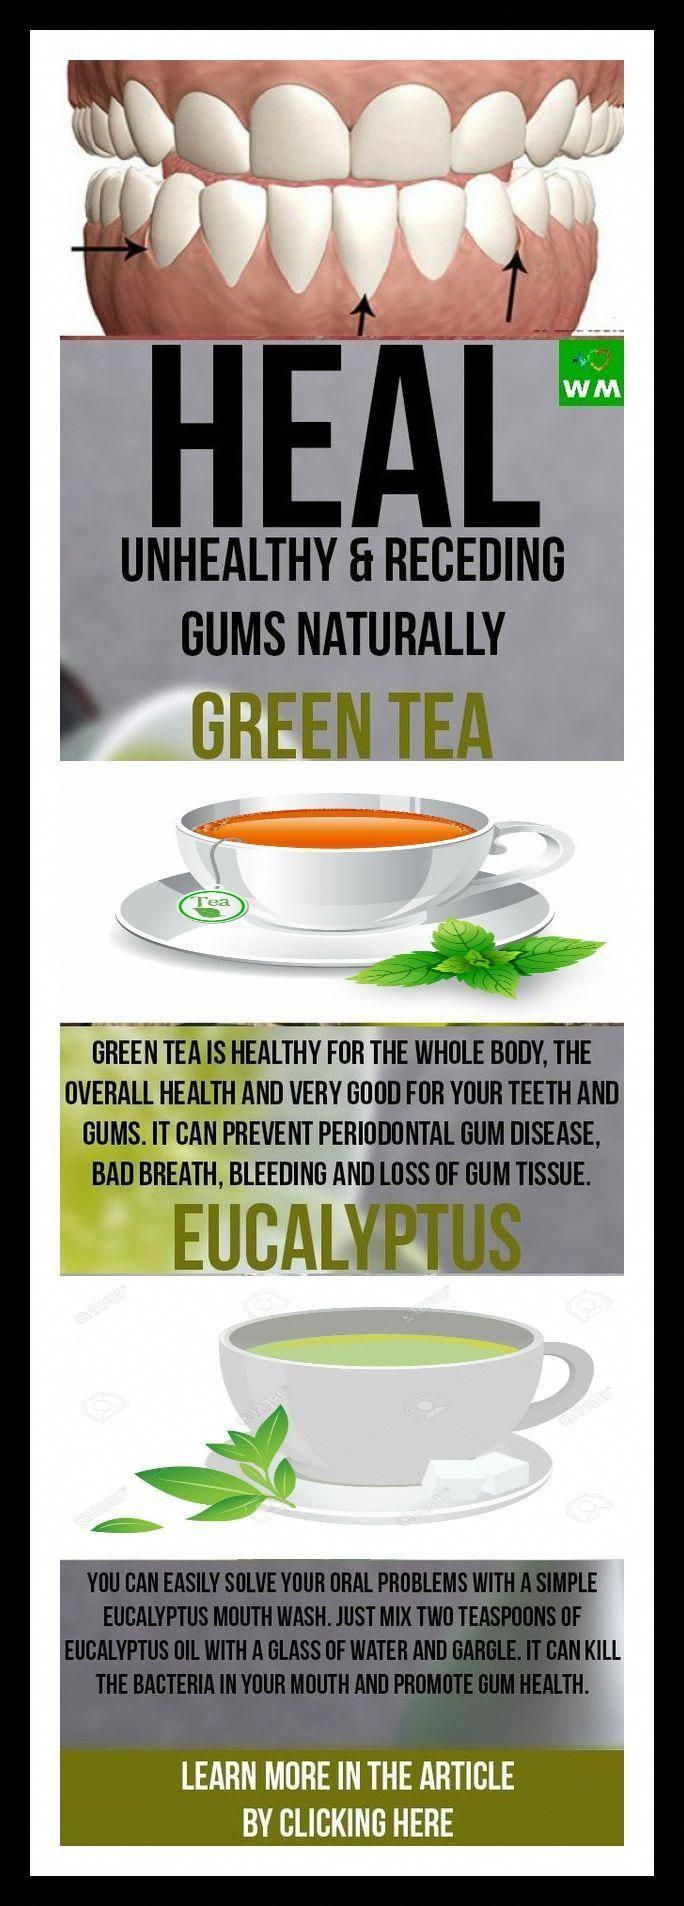 Heal Unhealthy & Receding Gums Naturally #health #fitness #recedinggreentea #homeremedies #gumhealth...